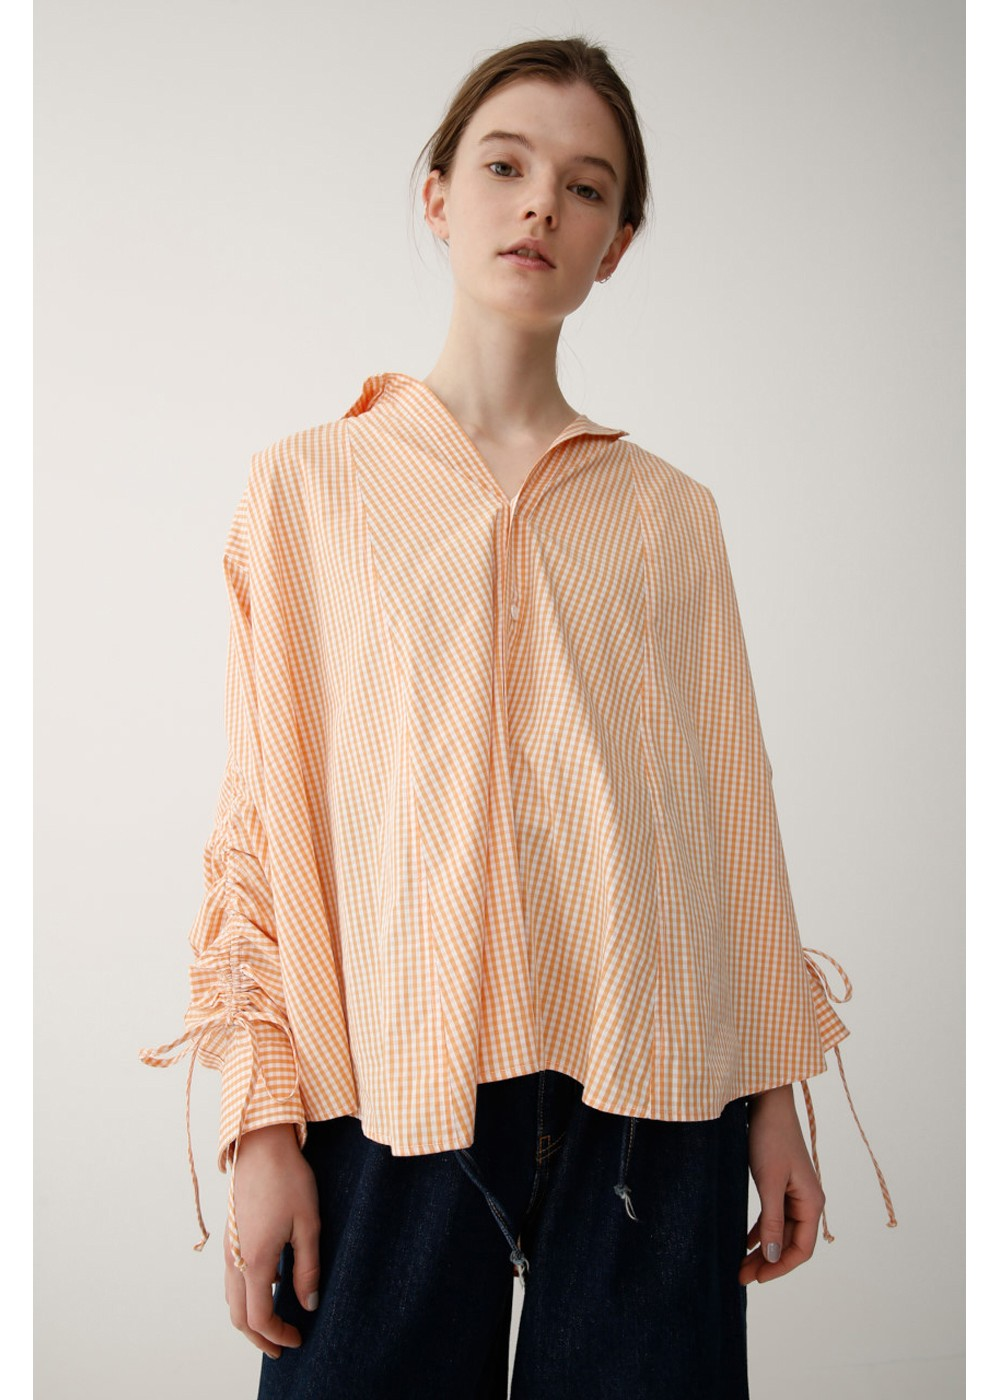 【最大70%OFF】DRAWSTRING SLEEVE SHIRT|柄ORG|シャツ|MOUSSY